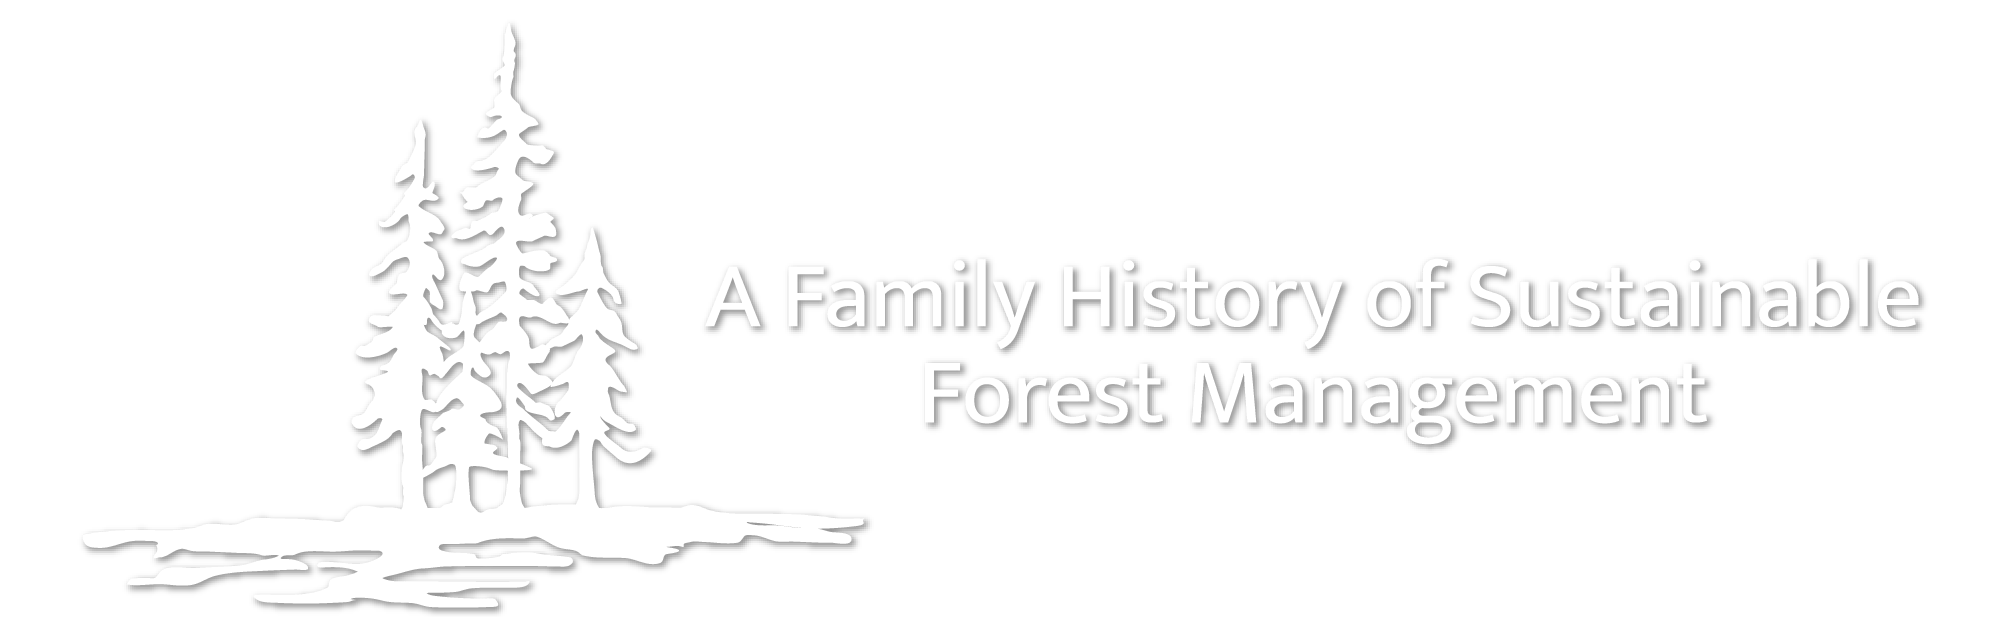 A Family History of Sustainable Forest Management